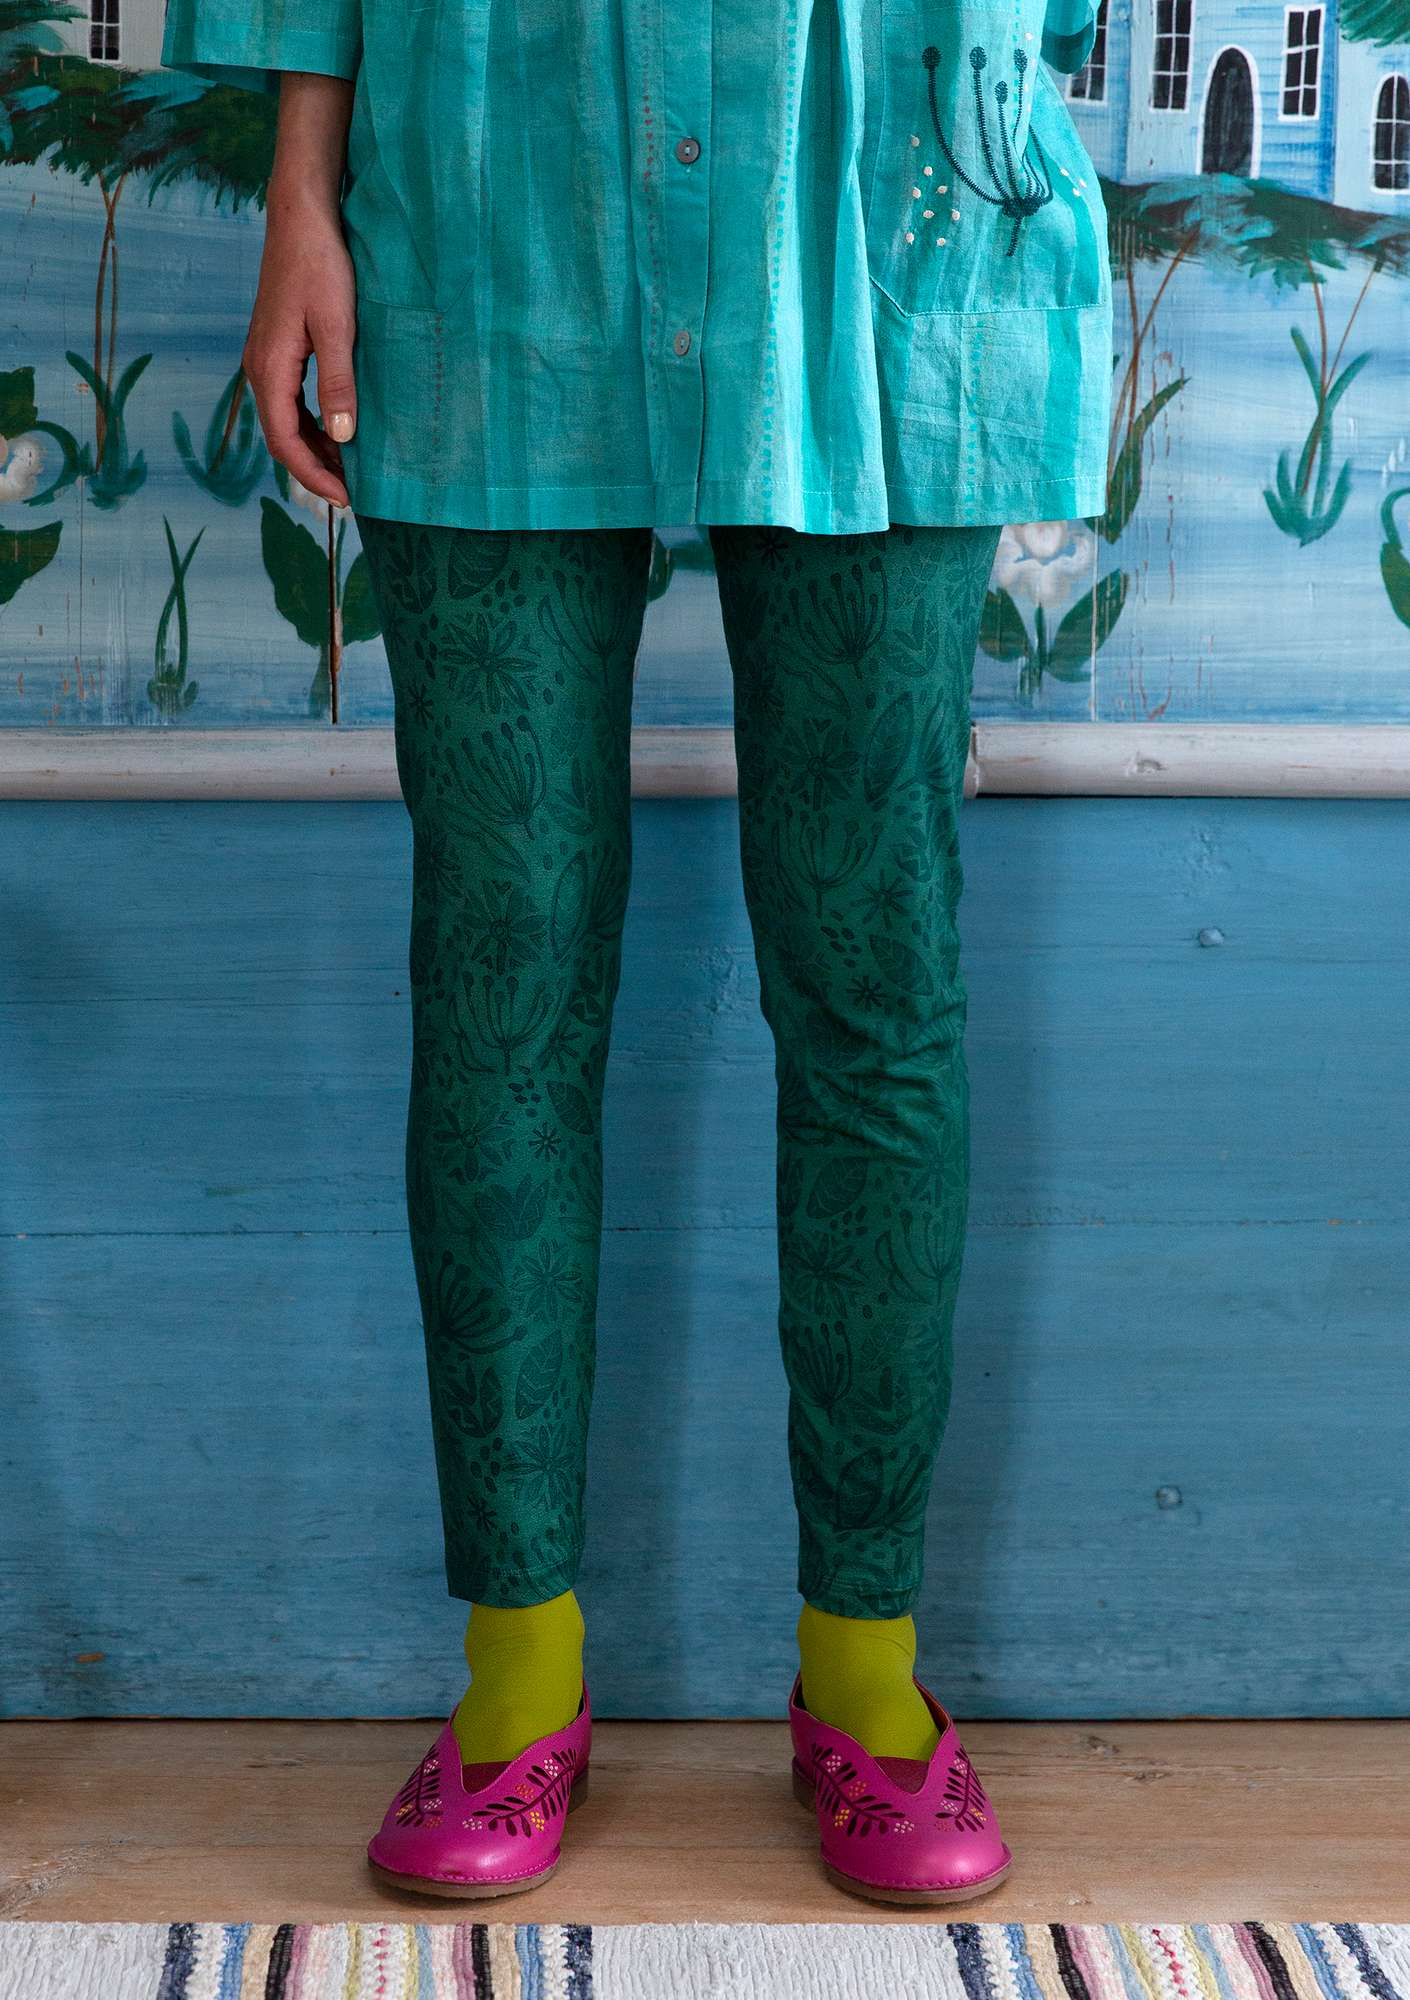 Legging Aqua peacock green